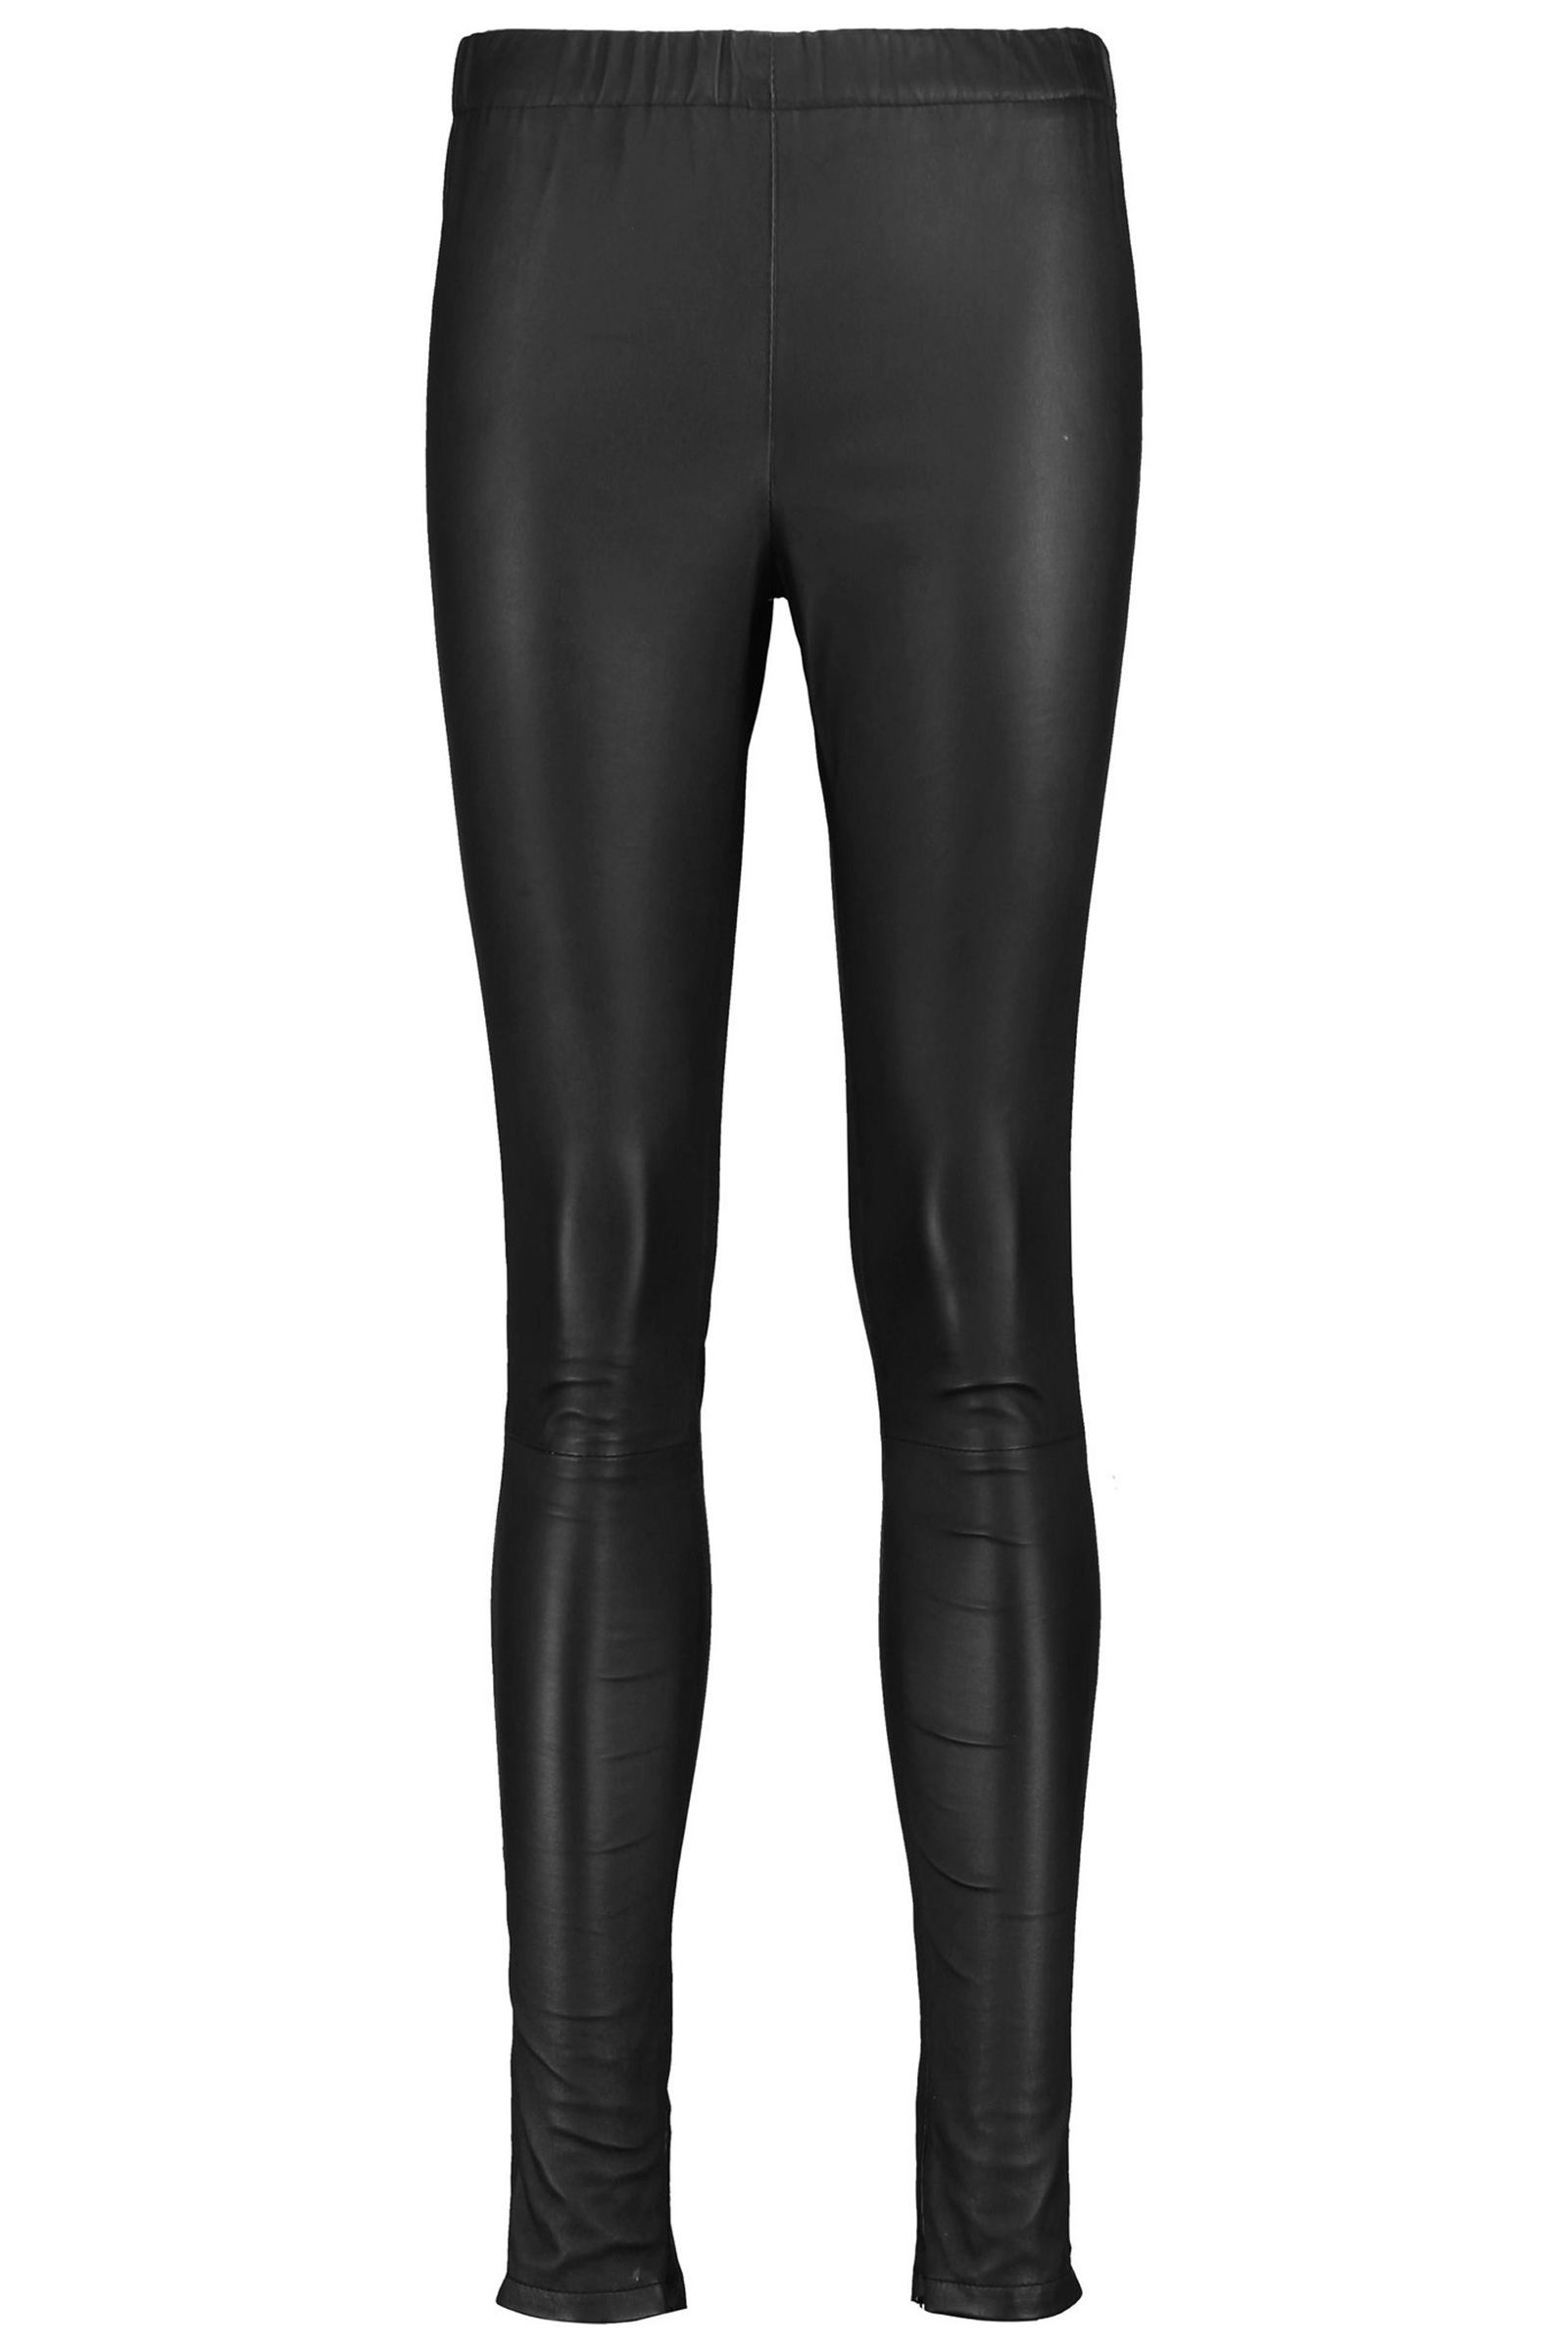 Click to Buy Iris-and-Ink-Leggings